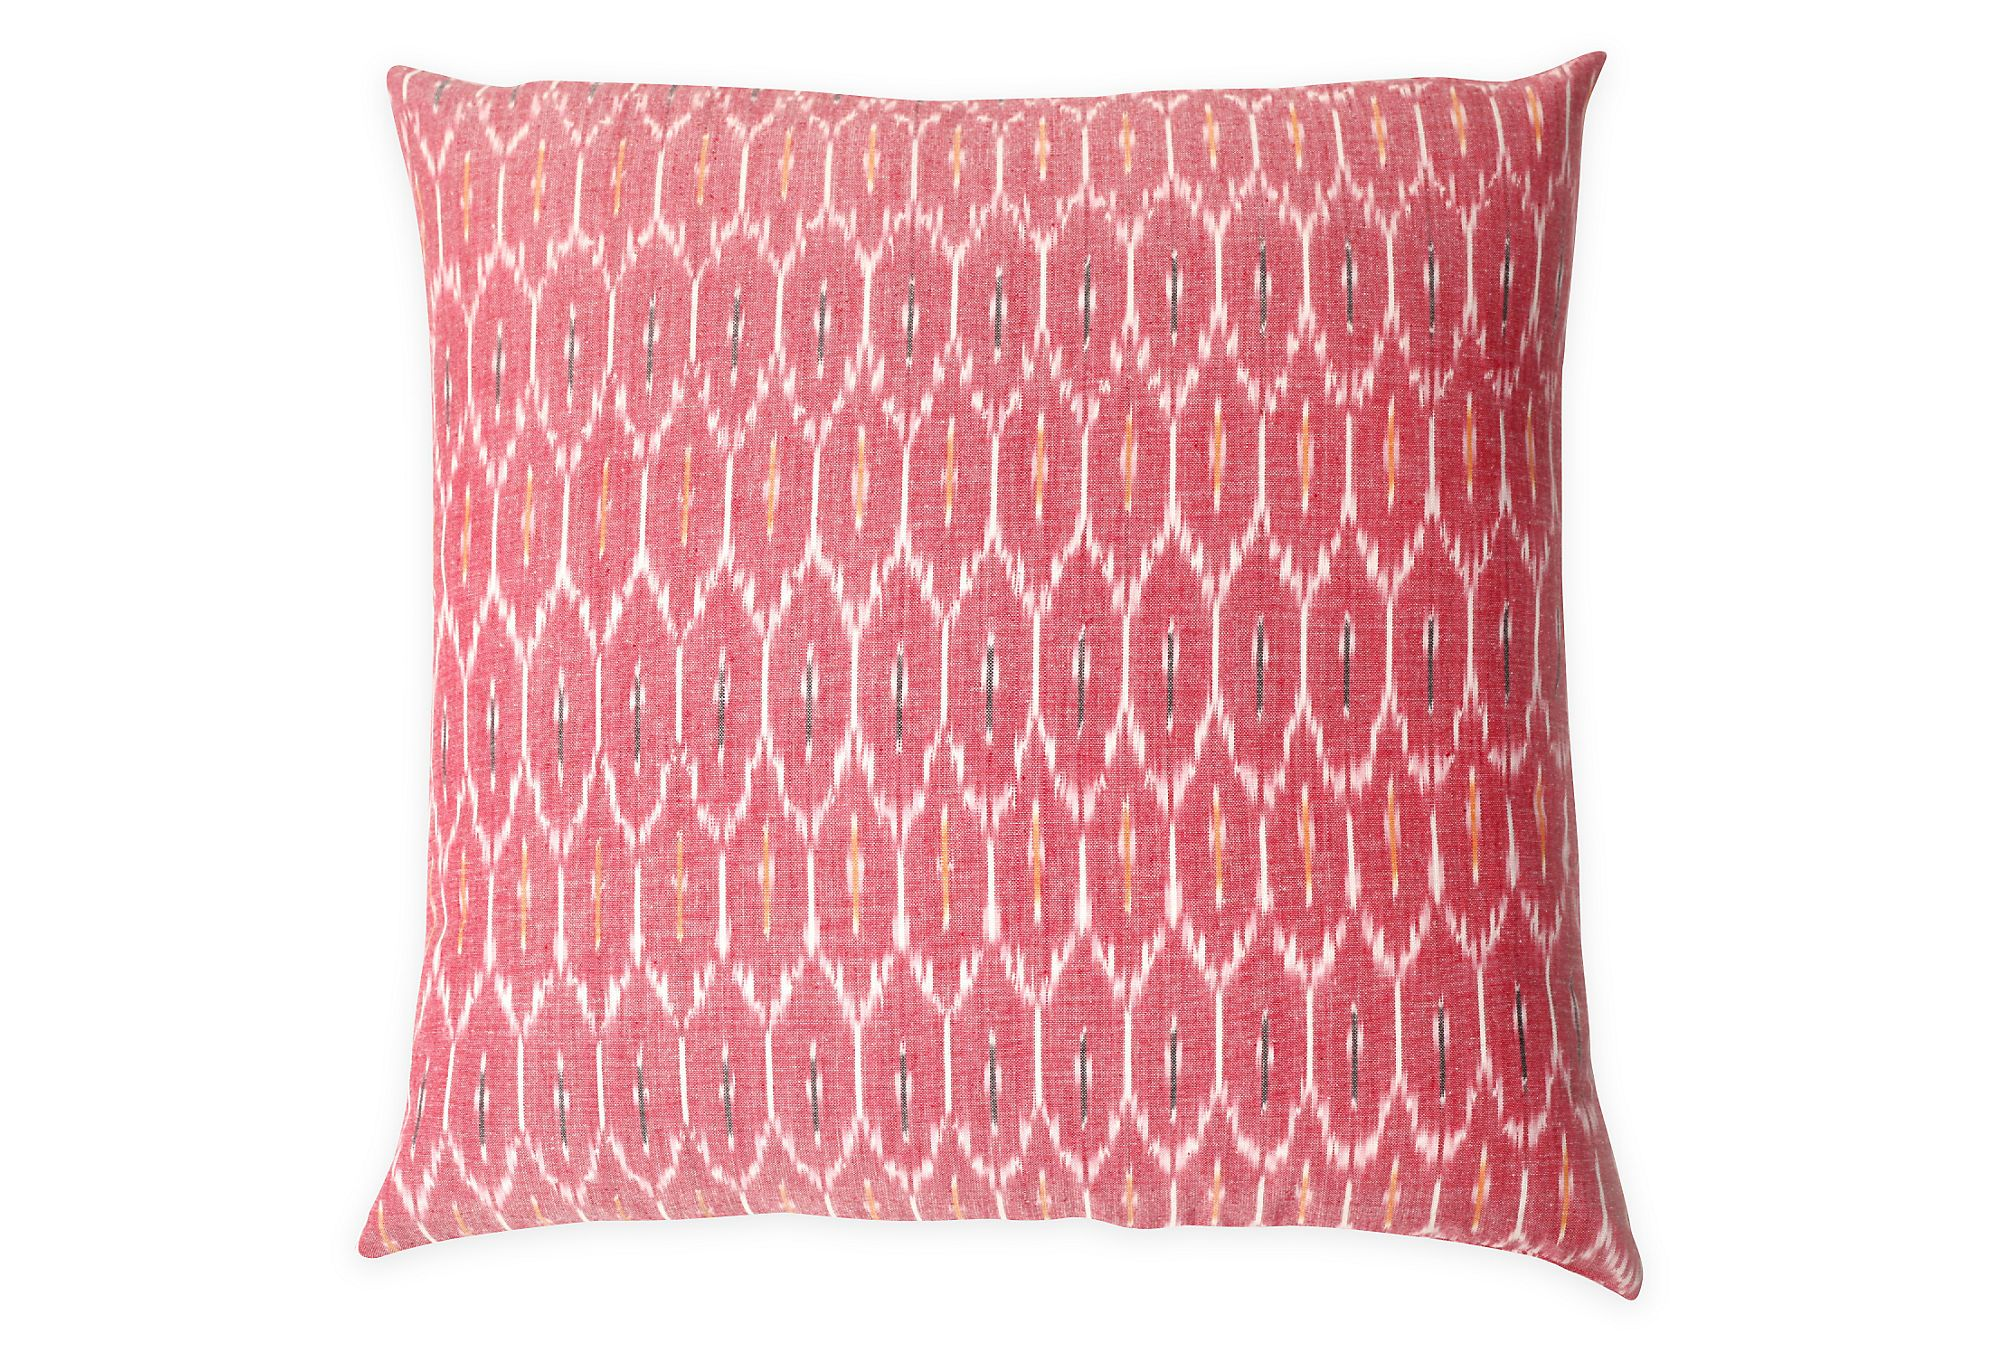 Chantel 20x20 Cotton Pillow, Pink | Summer Refresh | One Kings Lane